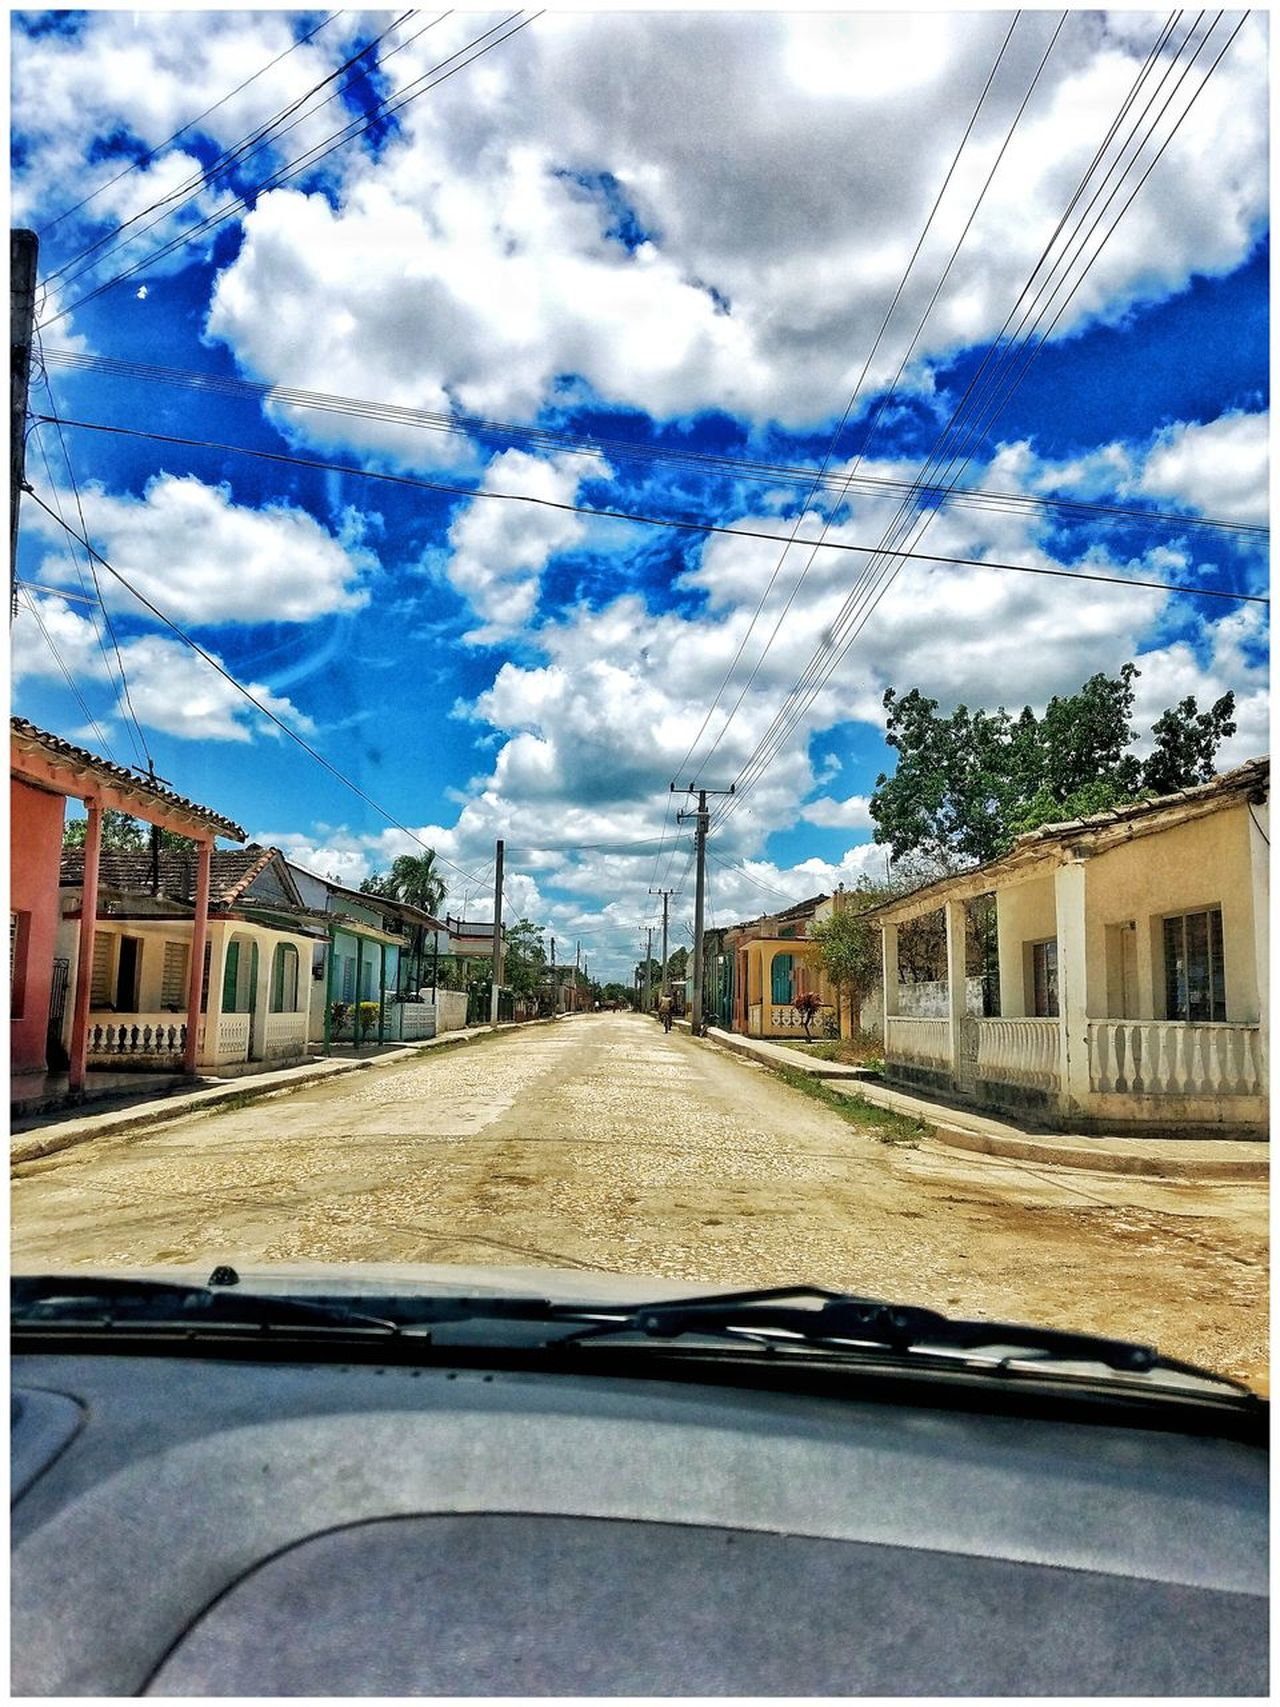 Outdoors Car Transportation Vehicle Interior Land Vehicle Car Interior Mode Of Transport Sky Cloud - Sky Windshield Day Car Point Of View The Way Forward Travel Window Architecture No People Built Structure Nature Cuba Cuban Town Cuban People San Diego Del Valle Villa Clara